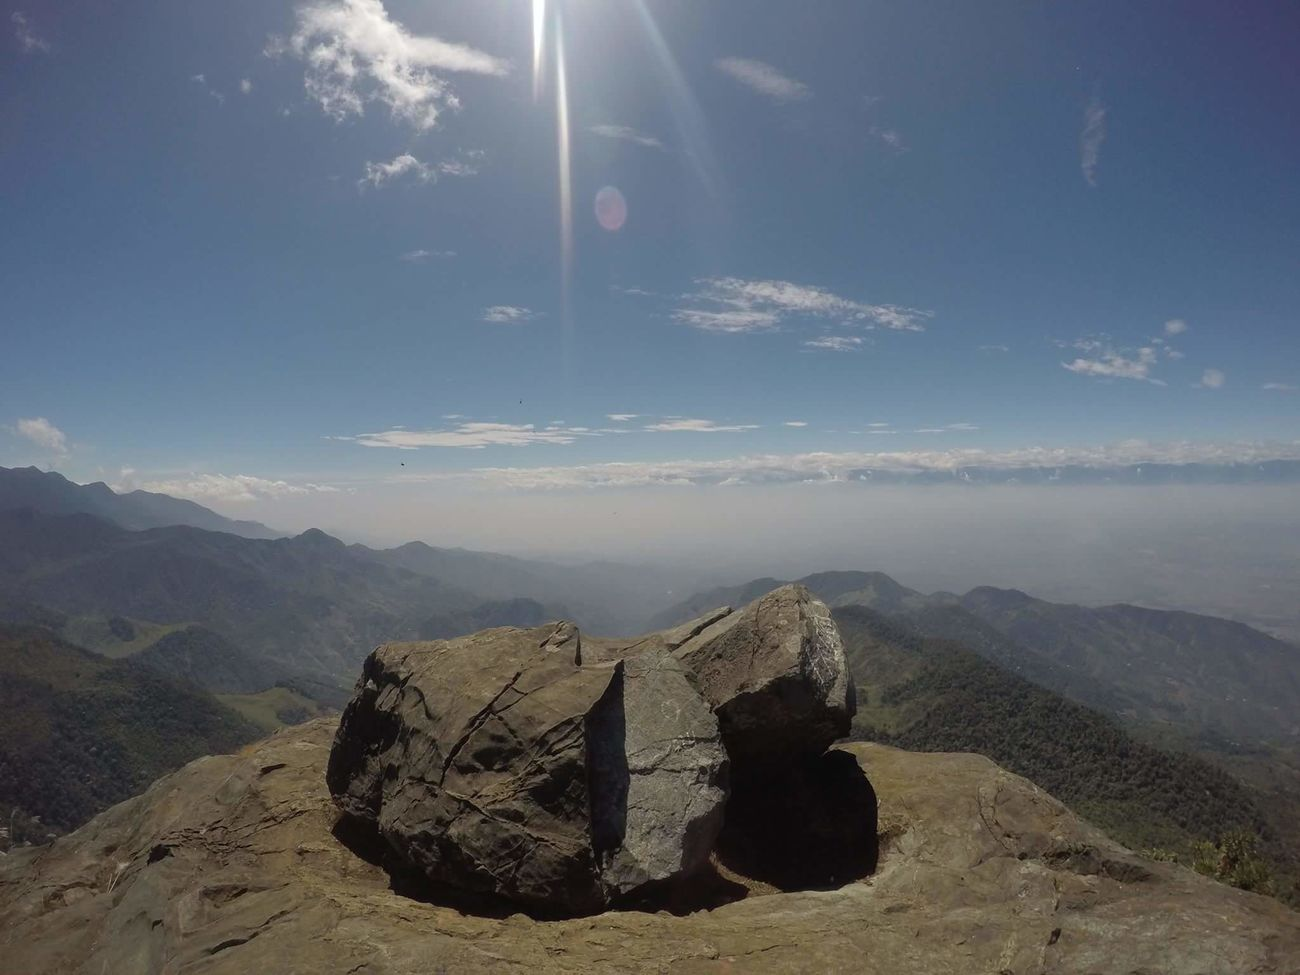 Mountain Stone Landscape Tranquility Non-urban Scene Nature Green Nature Top Of The Mountains Colombia Gopro Goprohero4 Gopro Shots Goprophotography Goprouniverse GoPrography